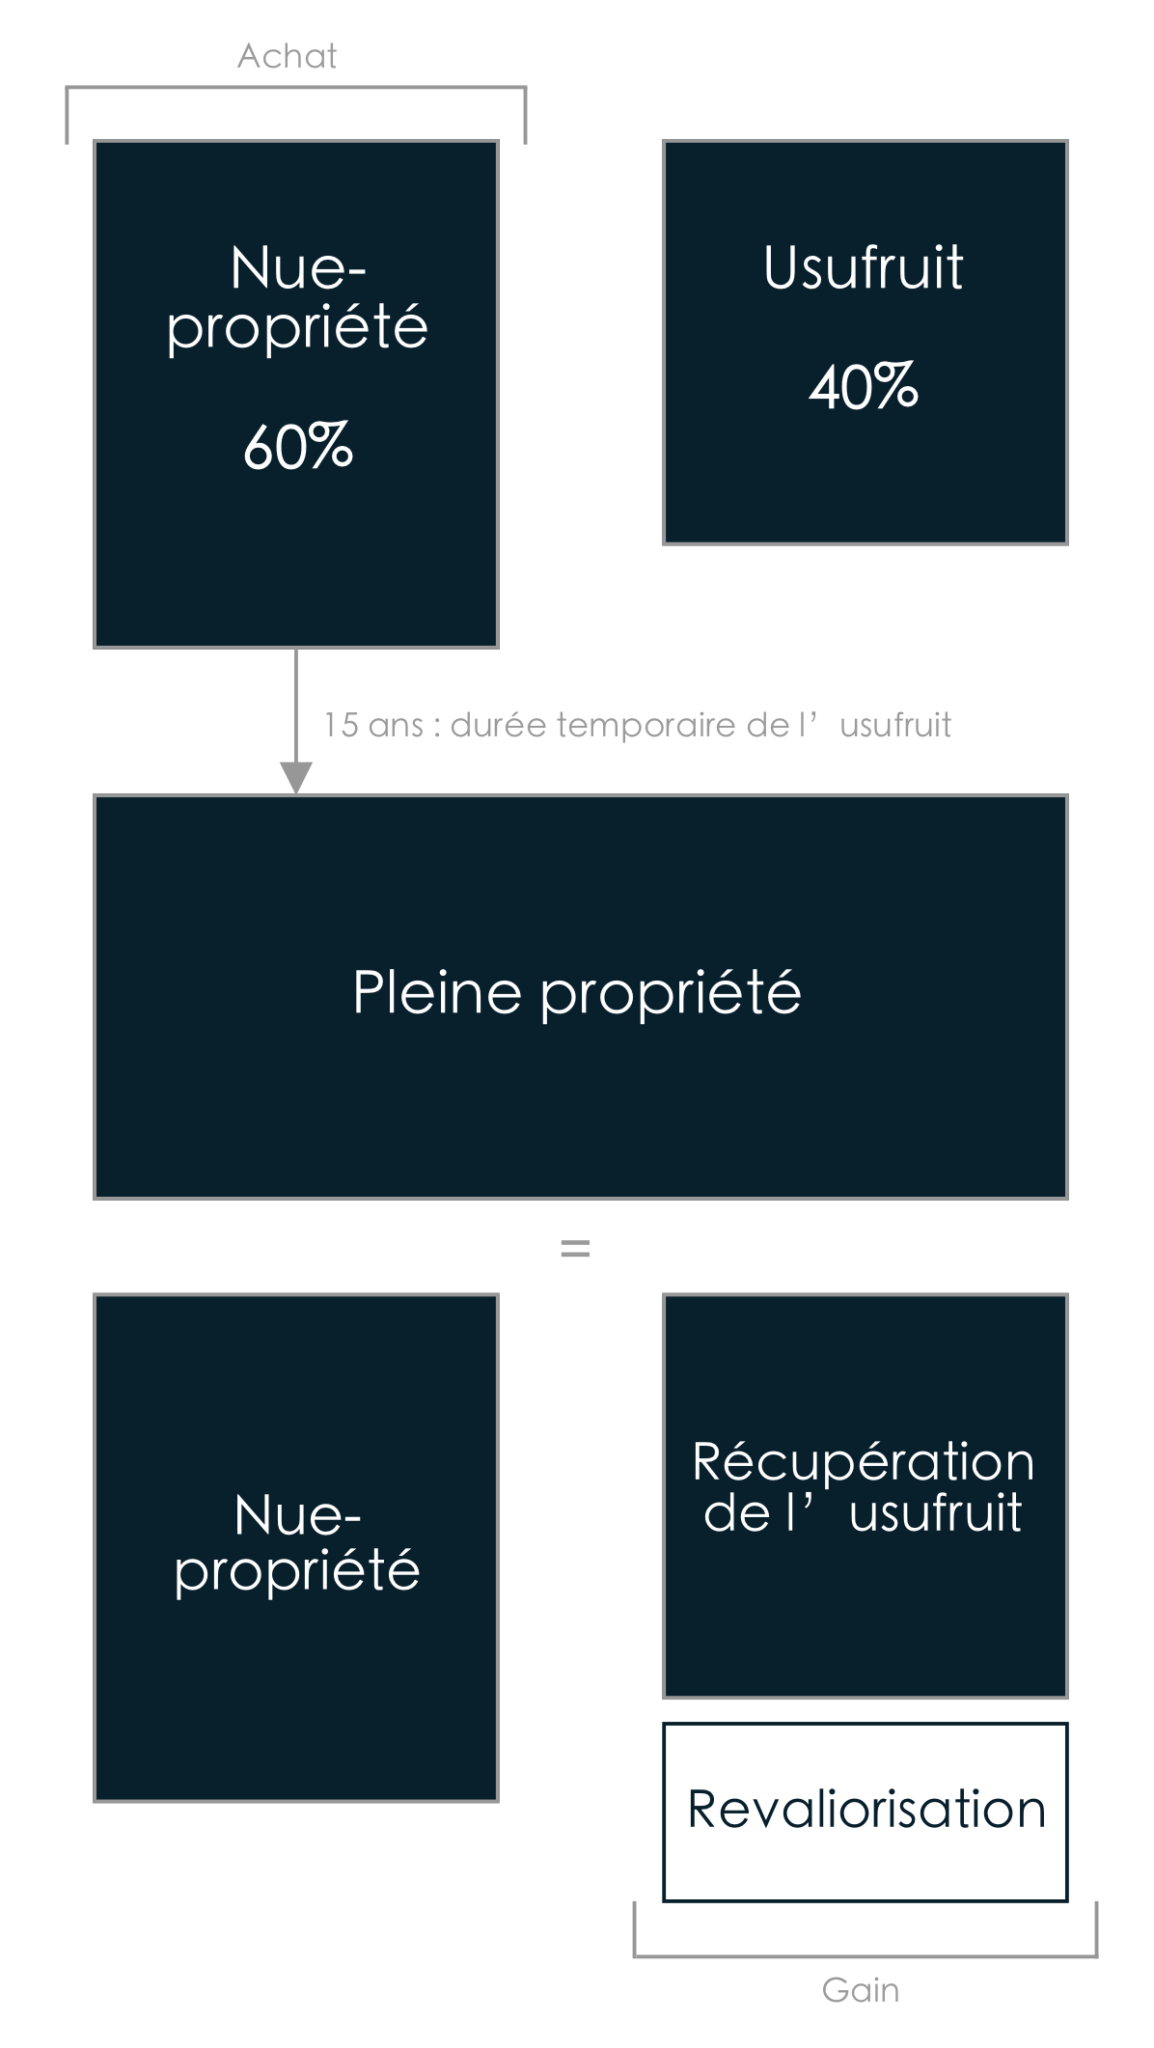 schema-nue-propriete-bertrand-demanes